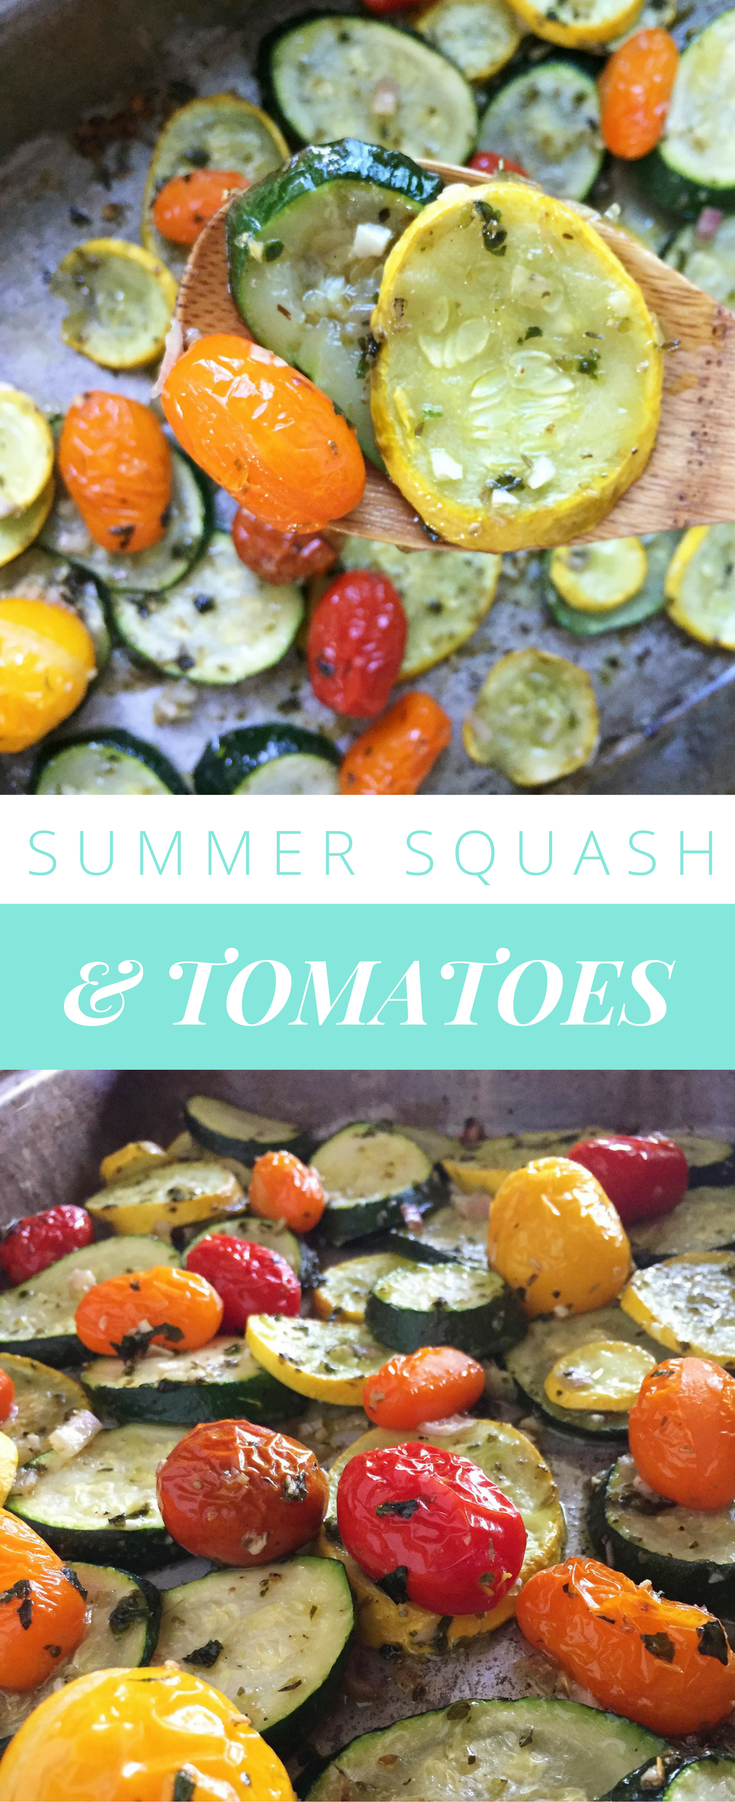 roasted-summer-squash-and-tomatoes-pin.png